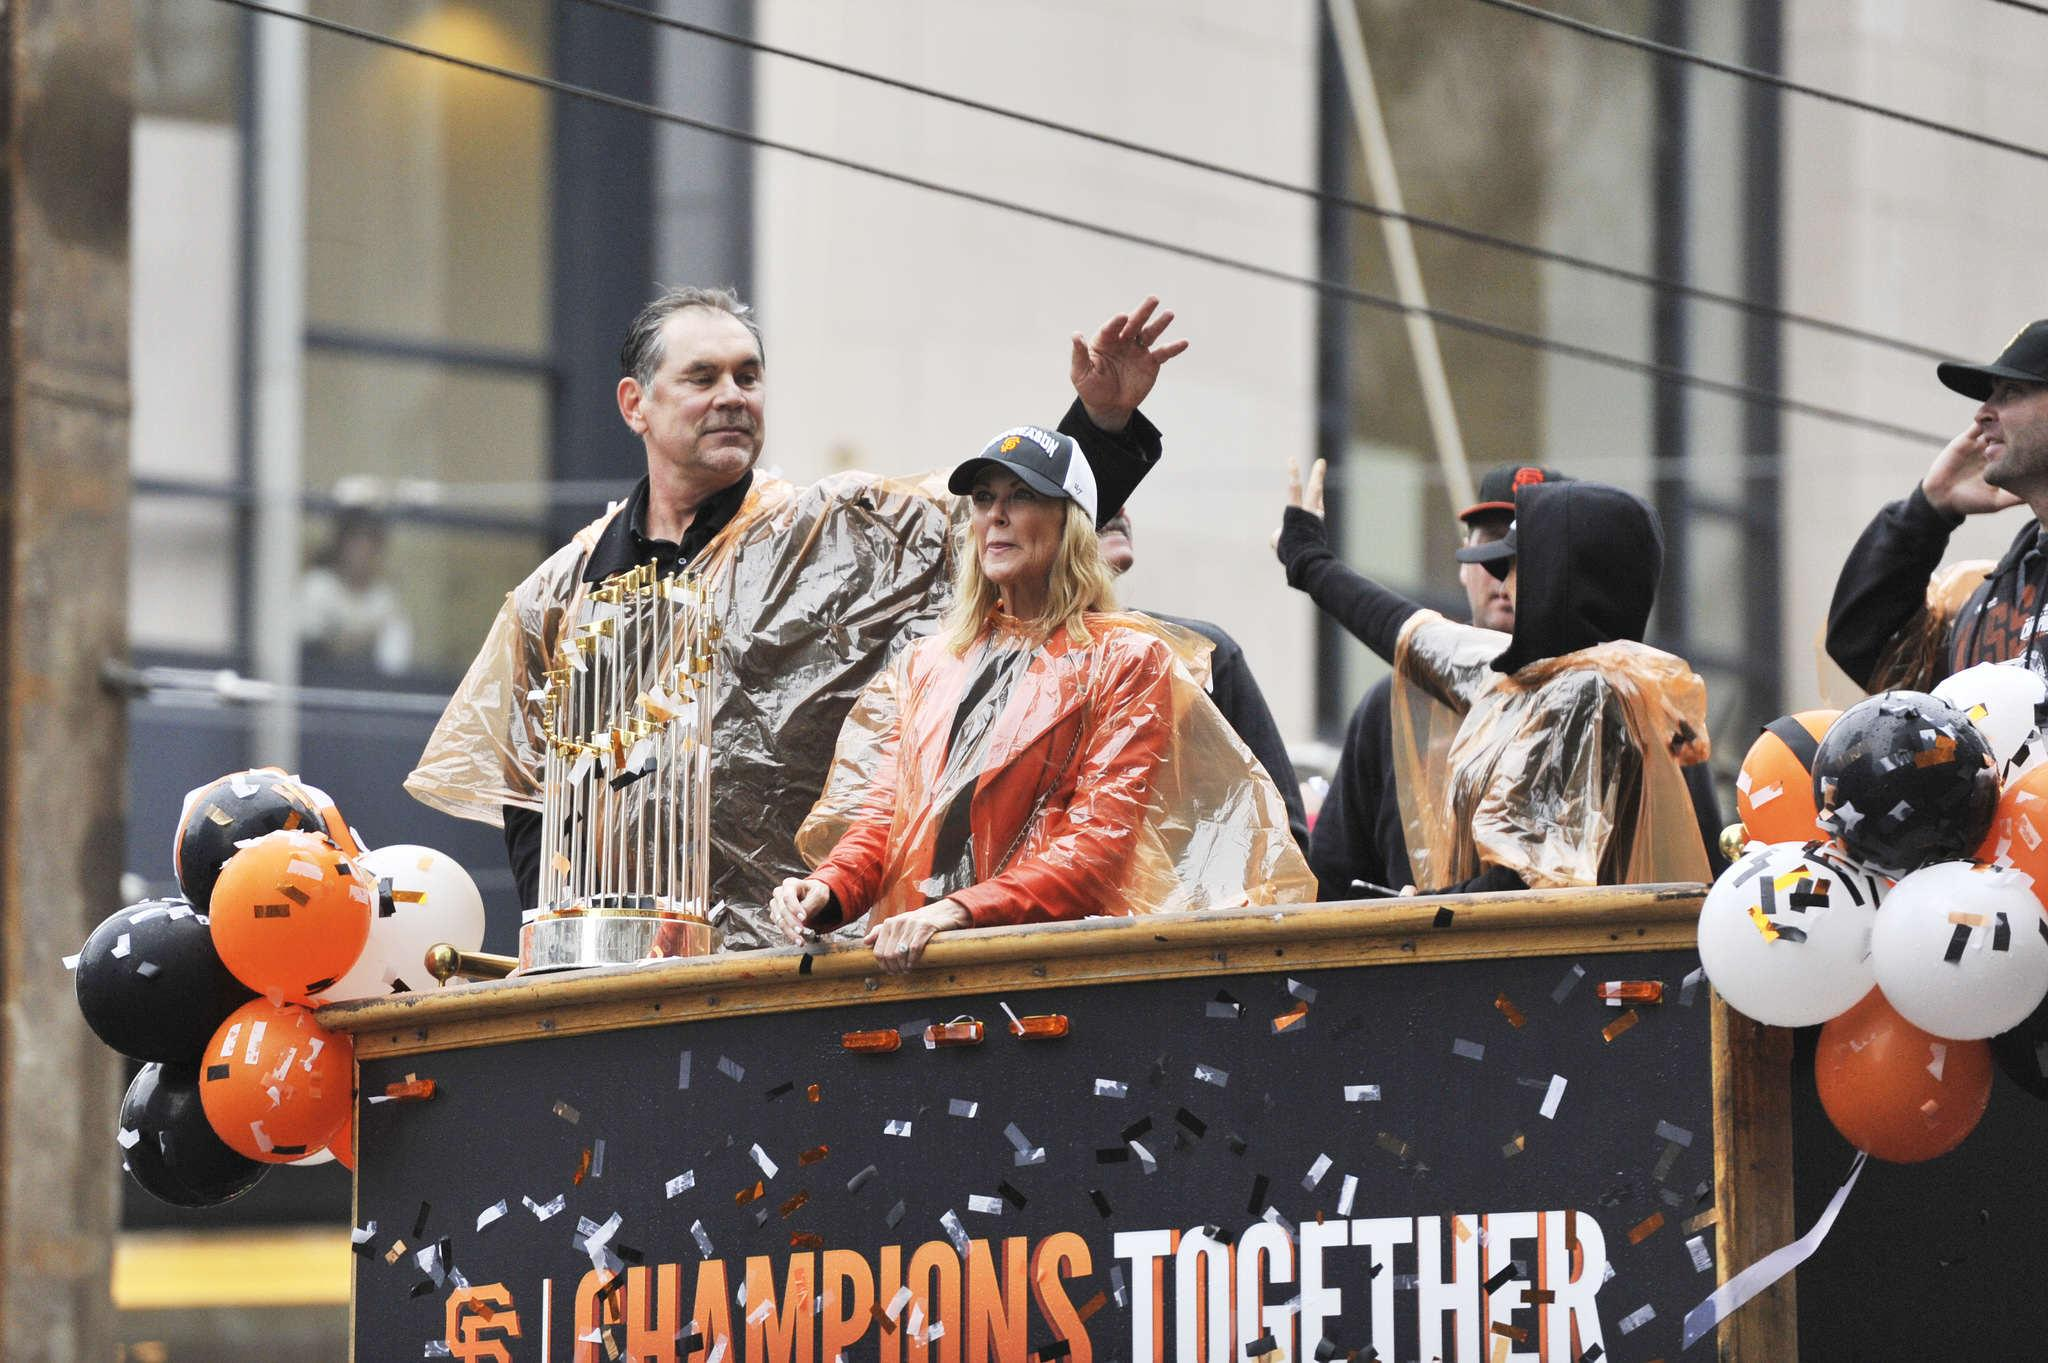 Ecstatic Giants fans pack downtown streets for celebratory parade